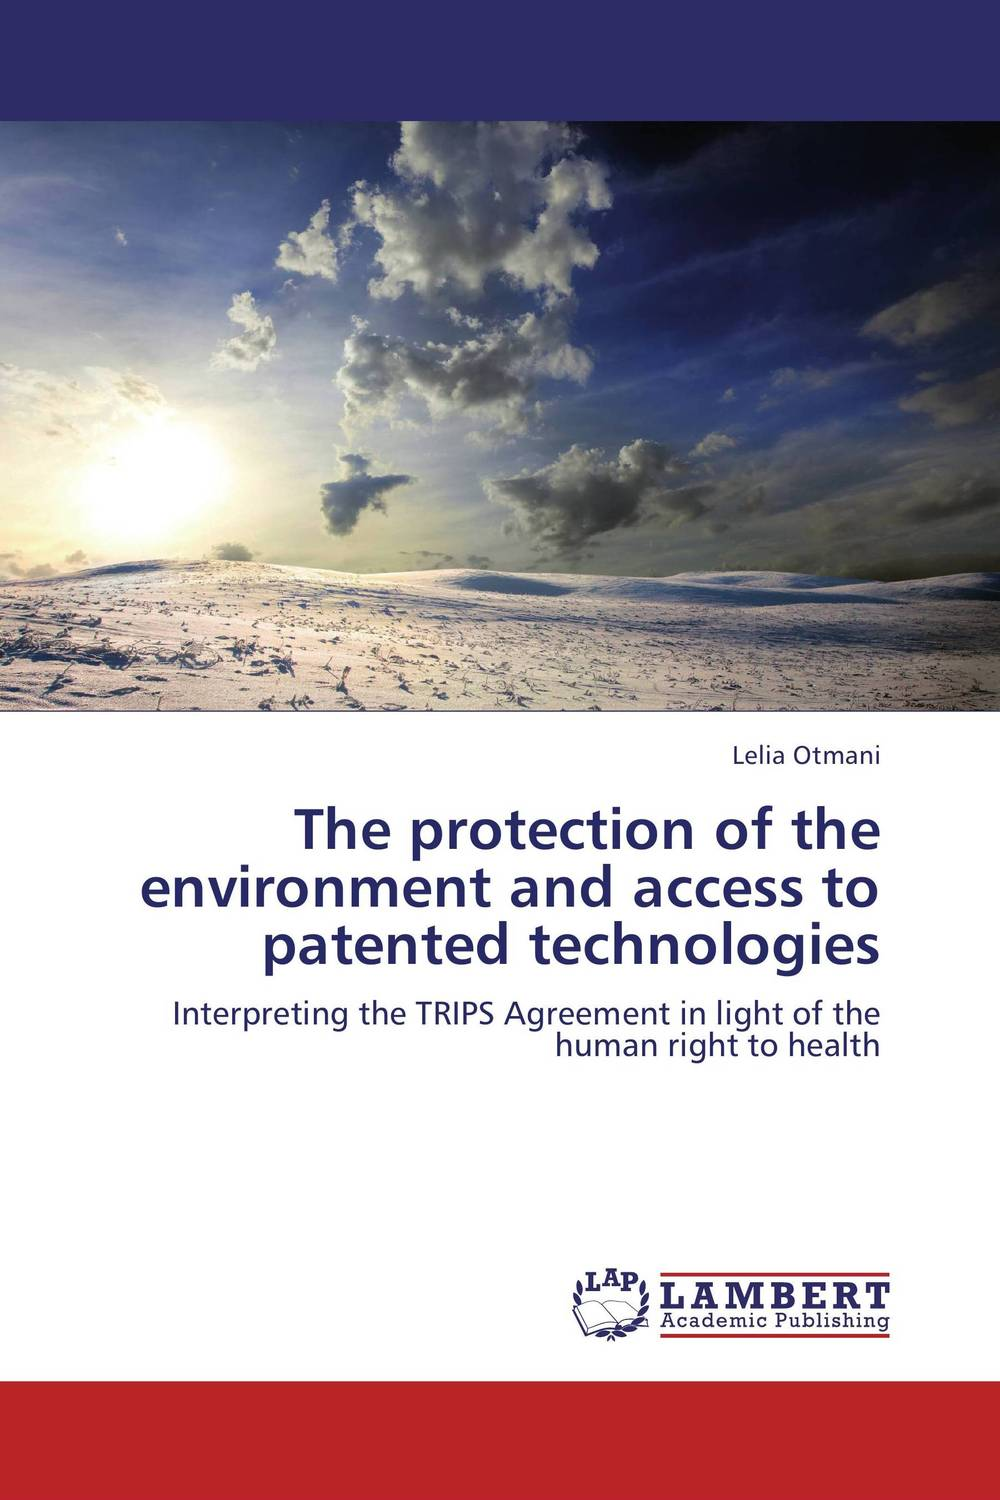 The protection of the environment and access to patented technologies